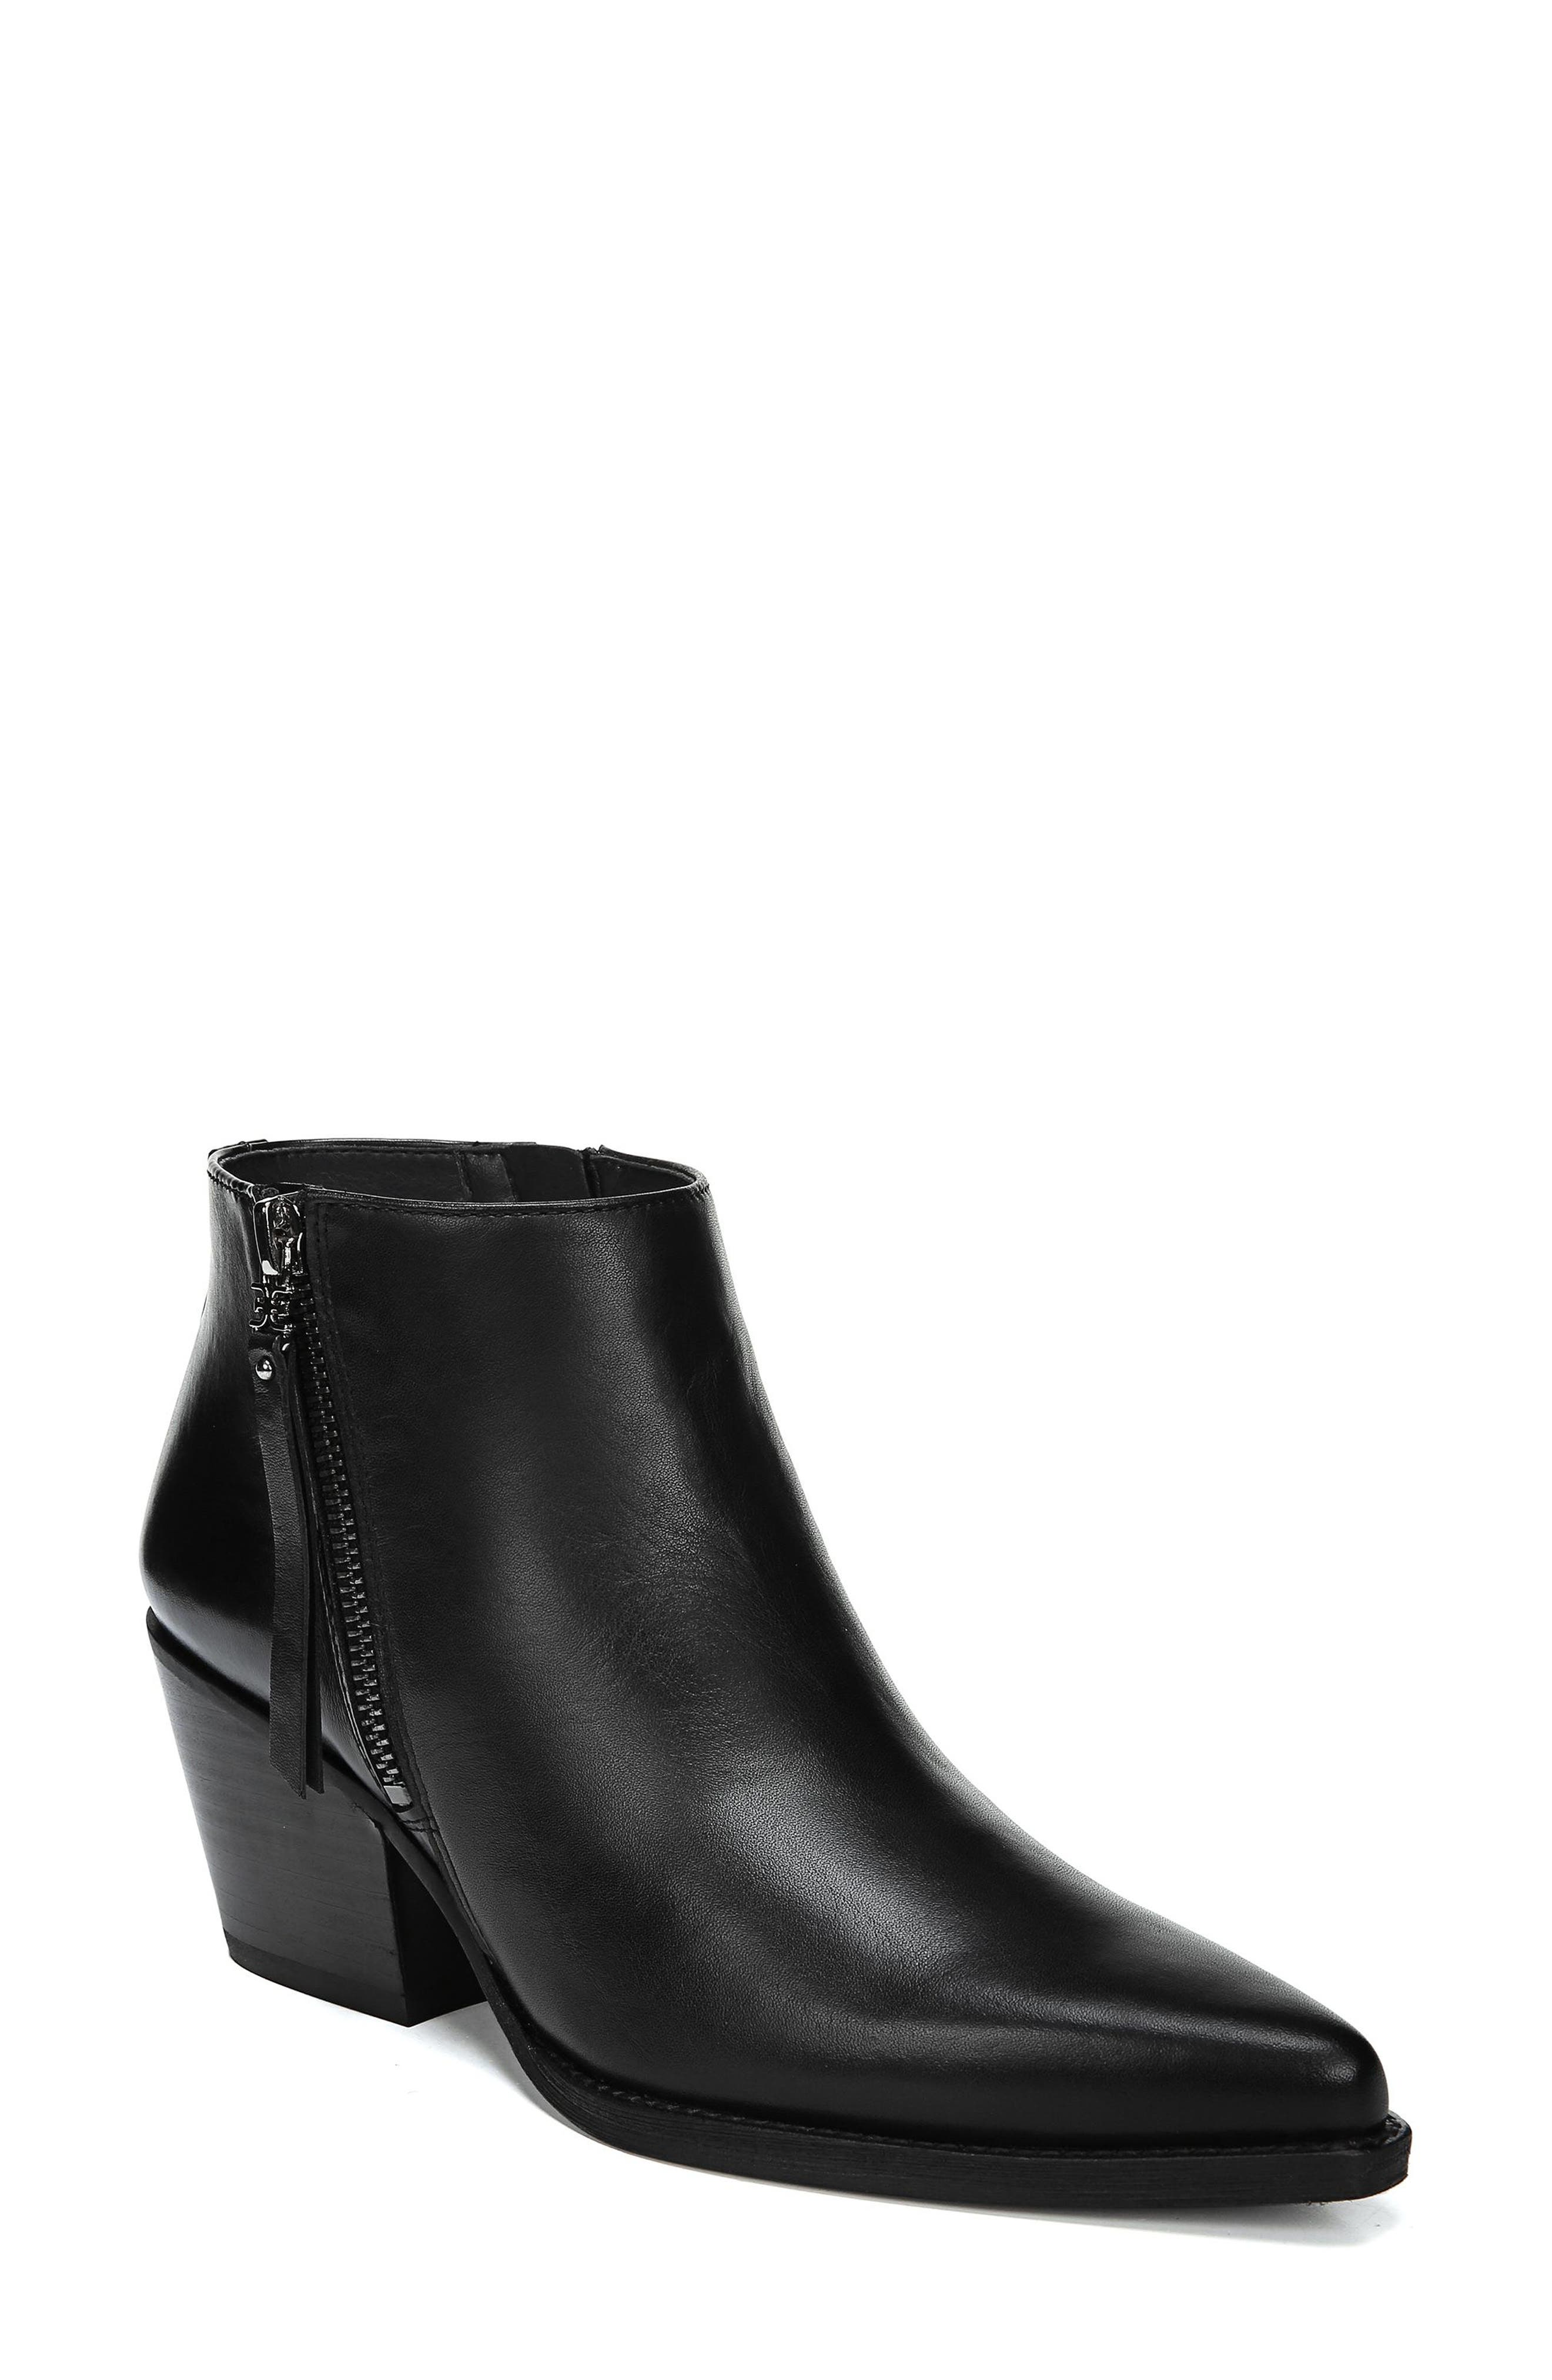 Walden Bootie,                         Main,                         color, BLACK LEATHER